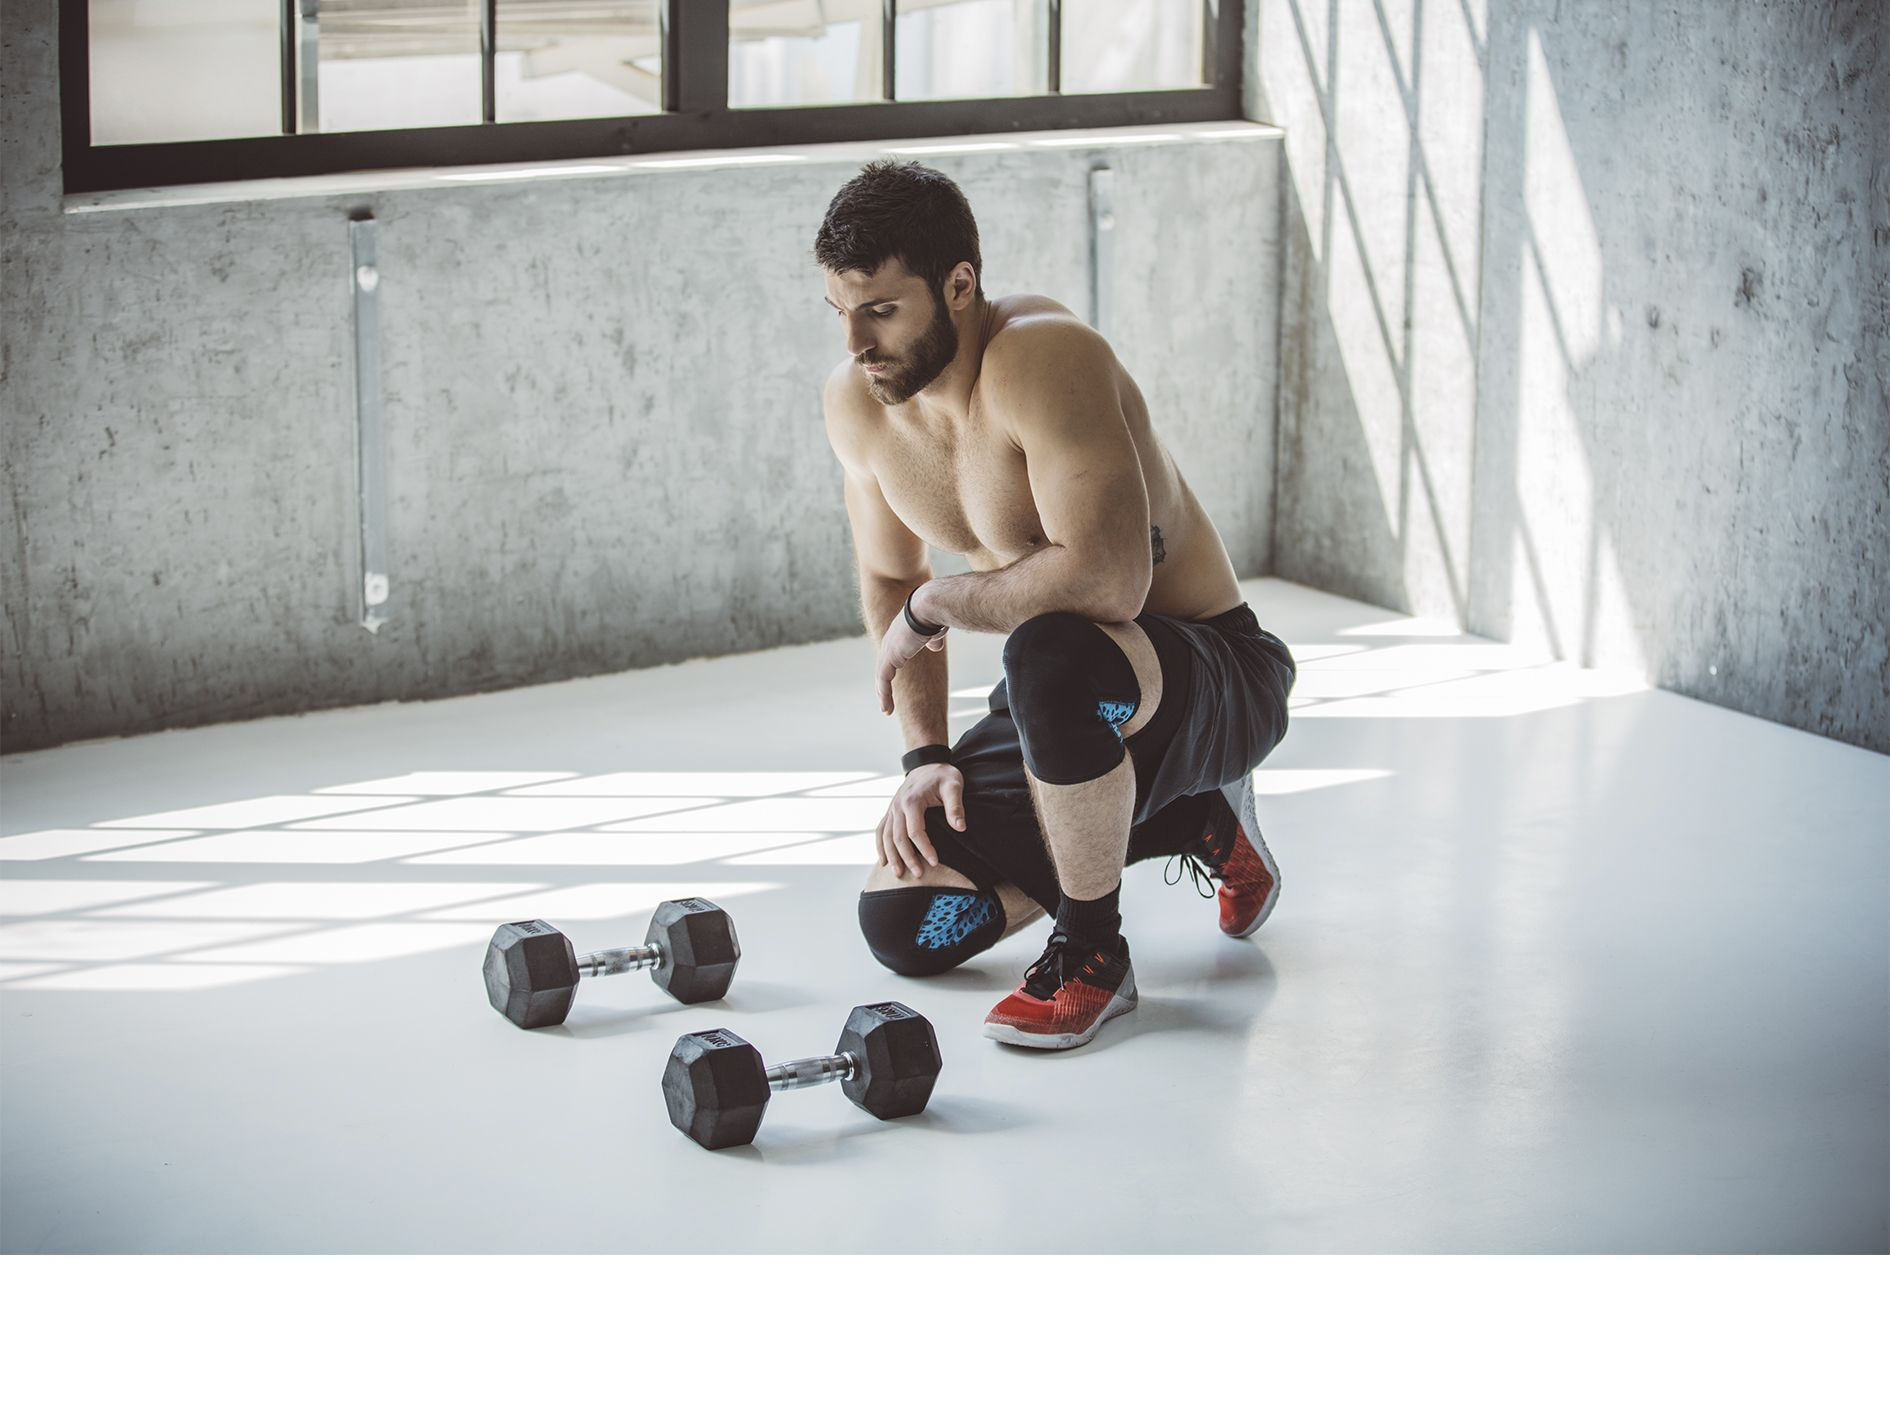 The Big Weekend Workout: Try This Dumbbell CrossFit WOD To Strip Fat & Build A Bigger Upper Body